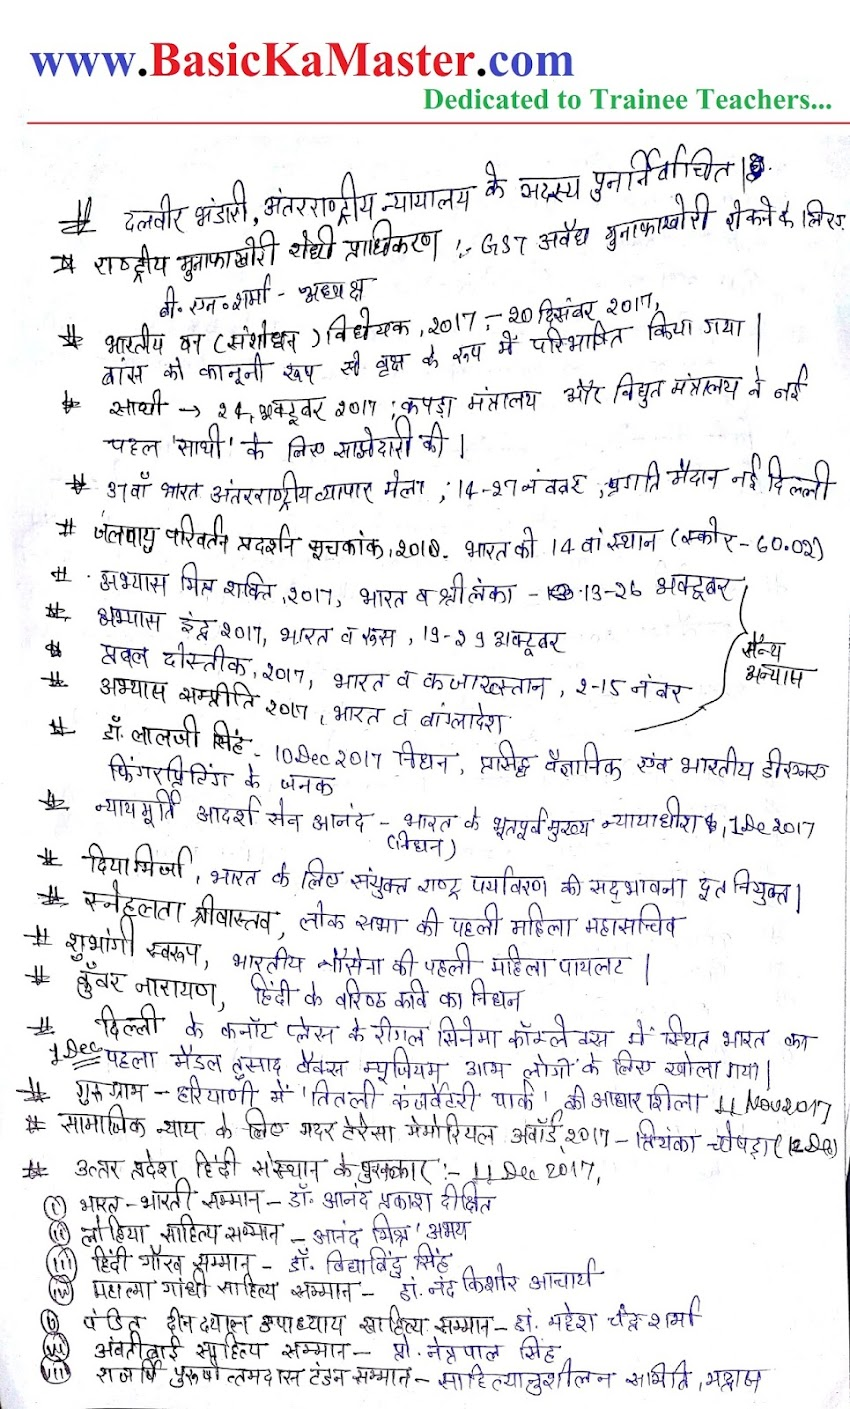 सामान्य ज्ञान /समसामयिकी hand written notes- 7 Current notes